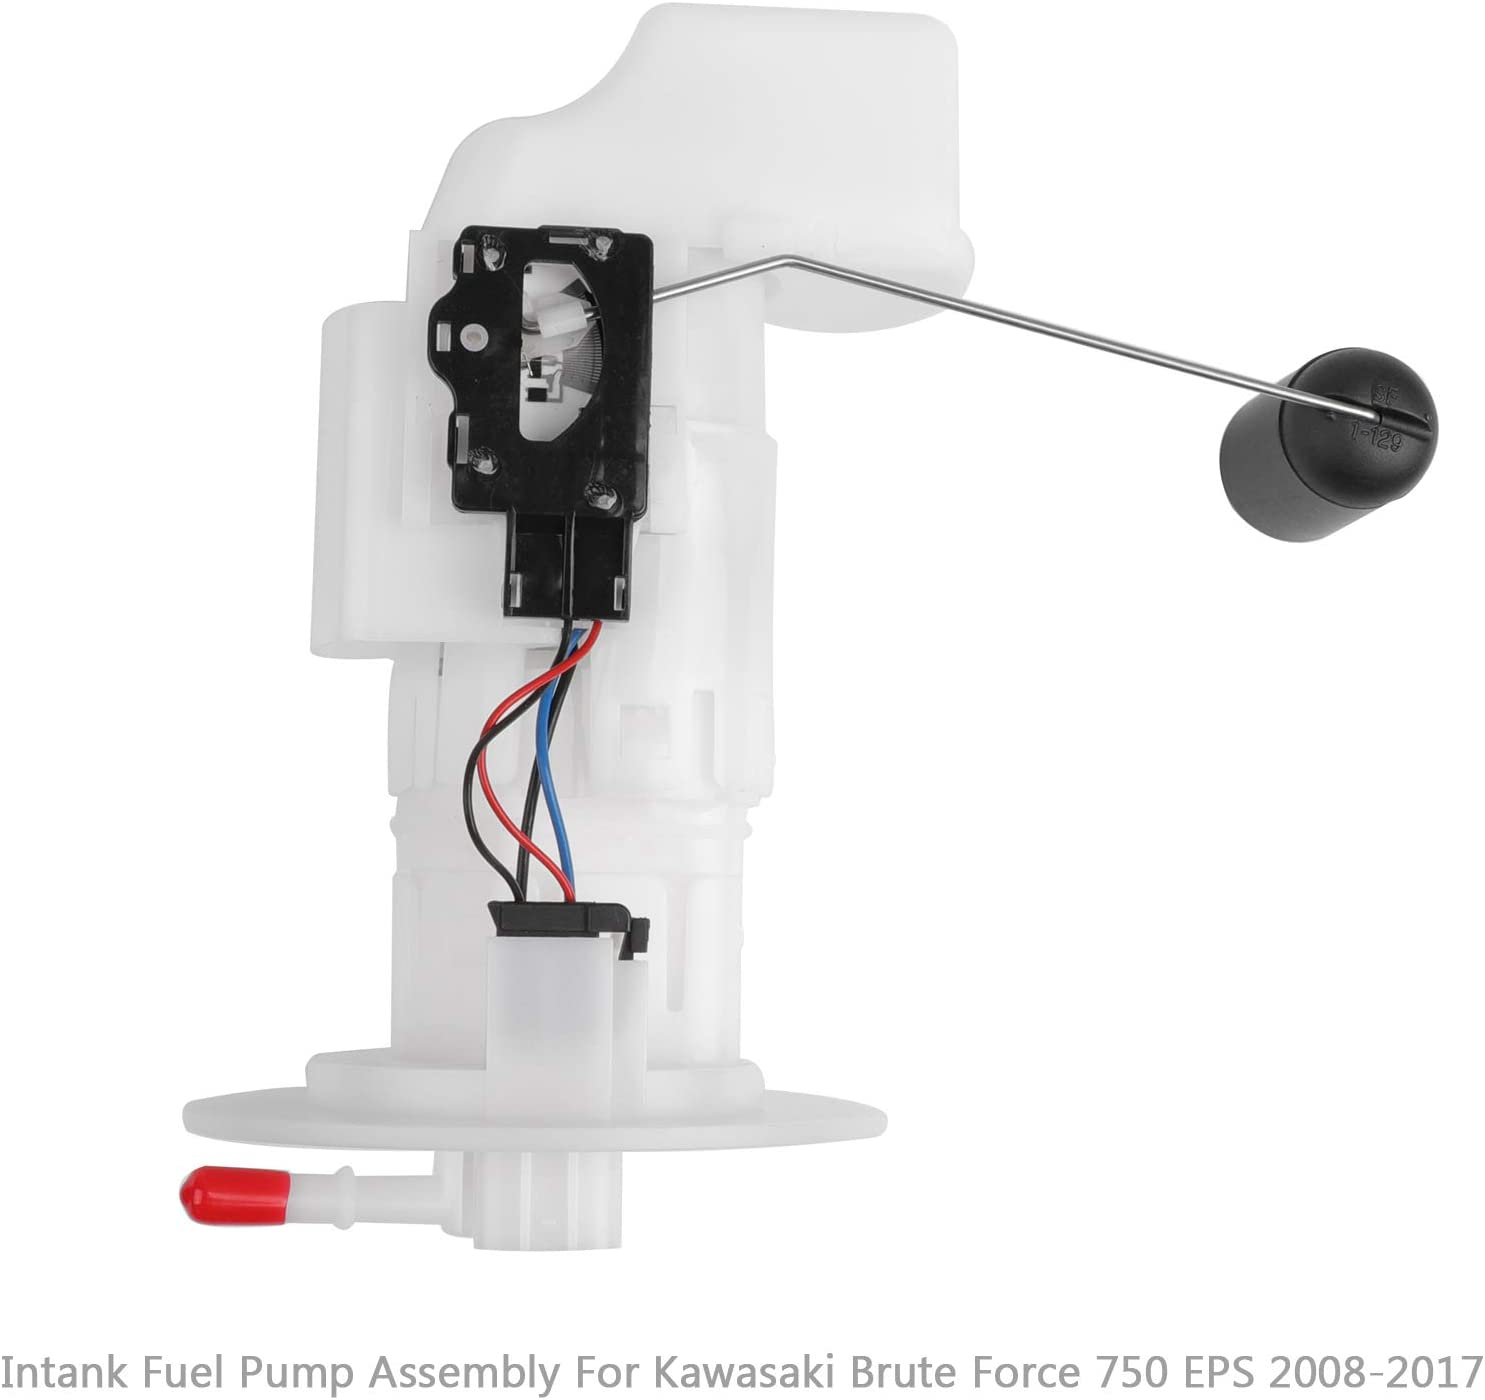 Intank Fuel Pump Assembly Fit for Kawasaki Brute Fit force 750 EPS 2008-2017